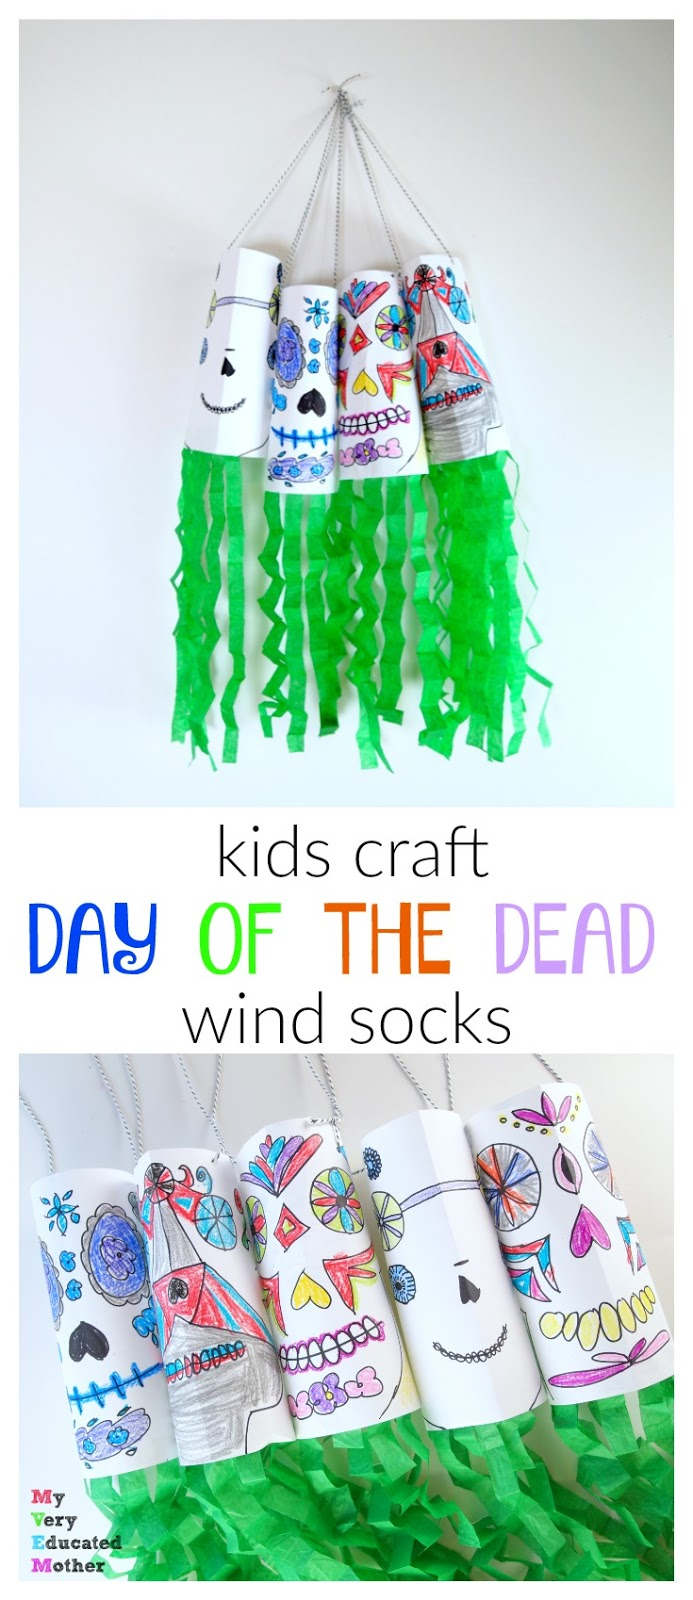 Kids Craft: Day of the Dead Wind Socks Perfect for making with a class or group of kids.